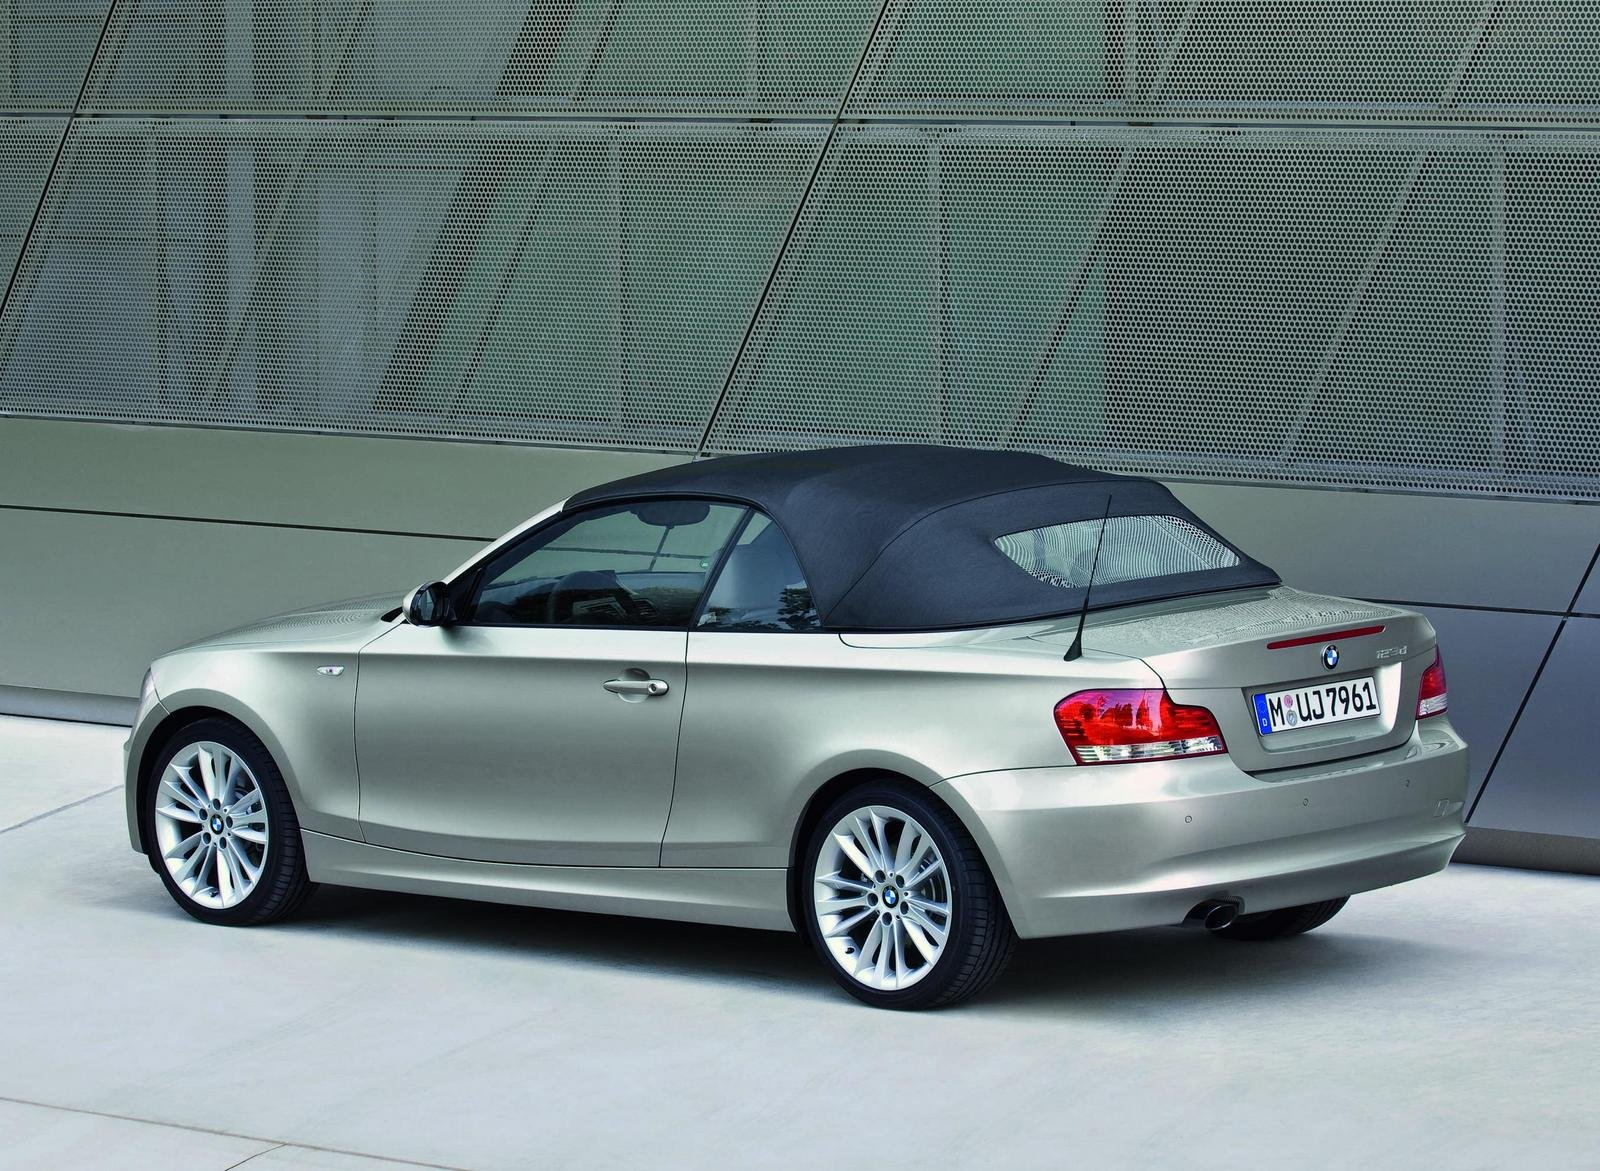 2009 bmw 1 series picture 257242 car review top speed. Black Bedroom Furniture Sets. Home Design Ideas